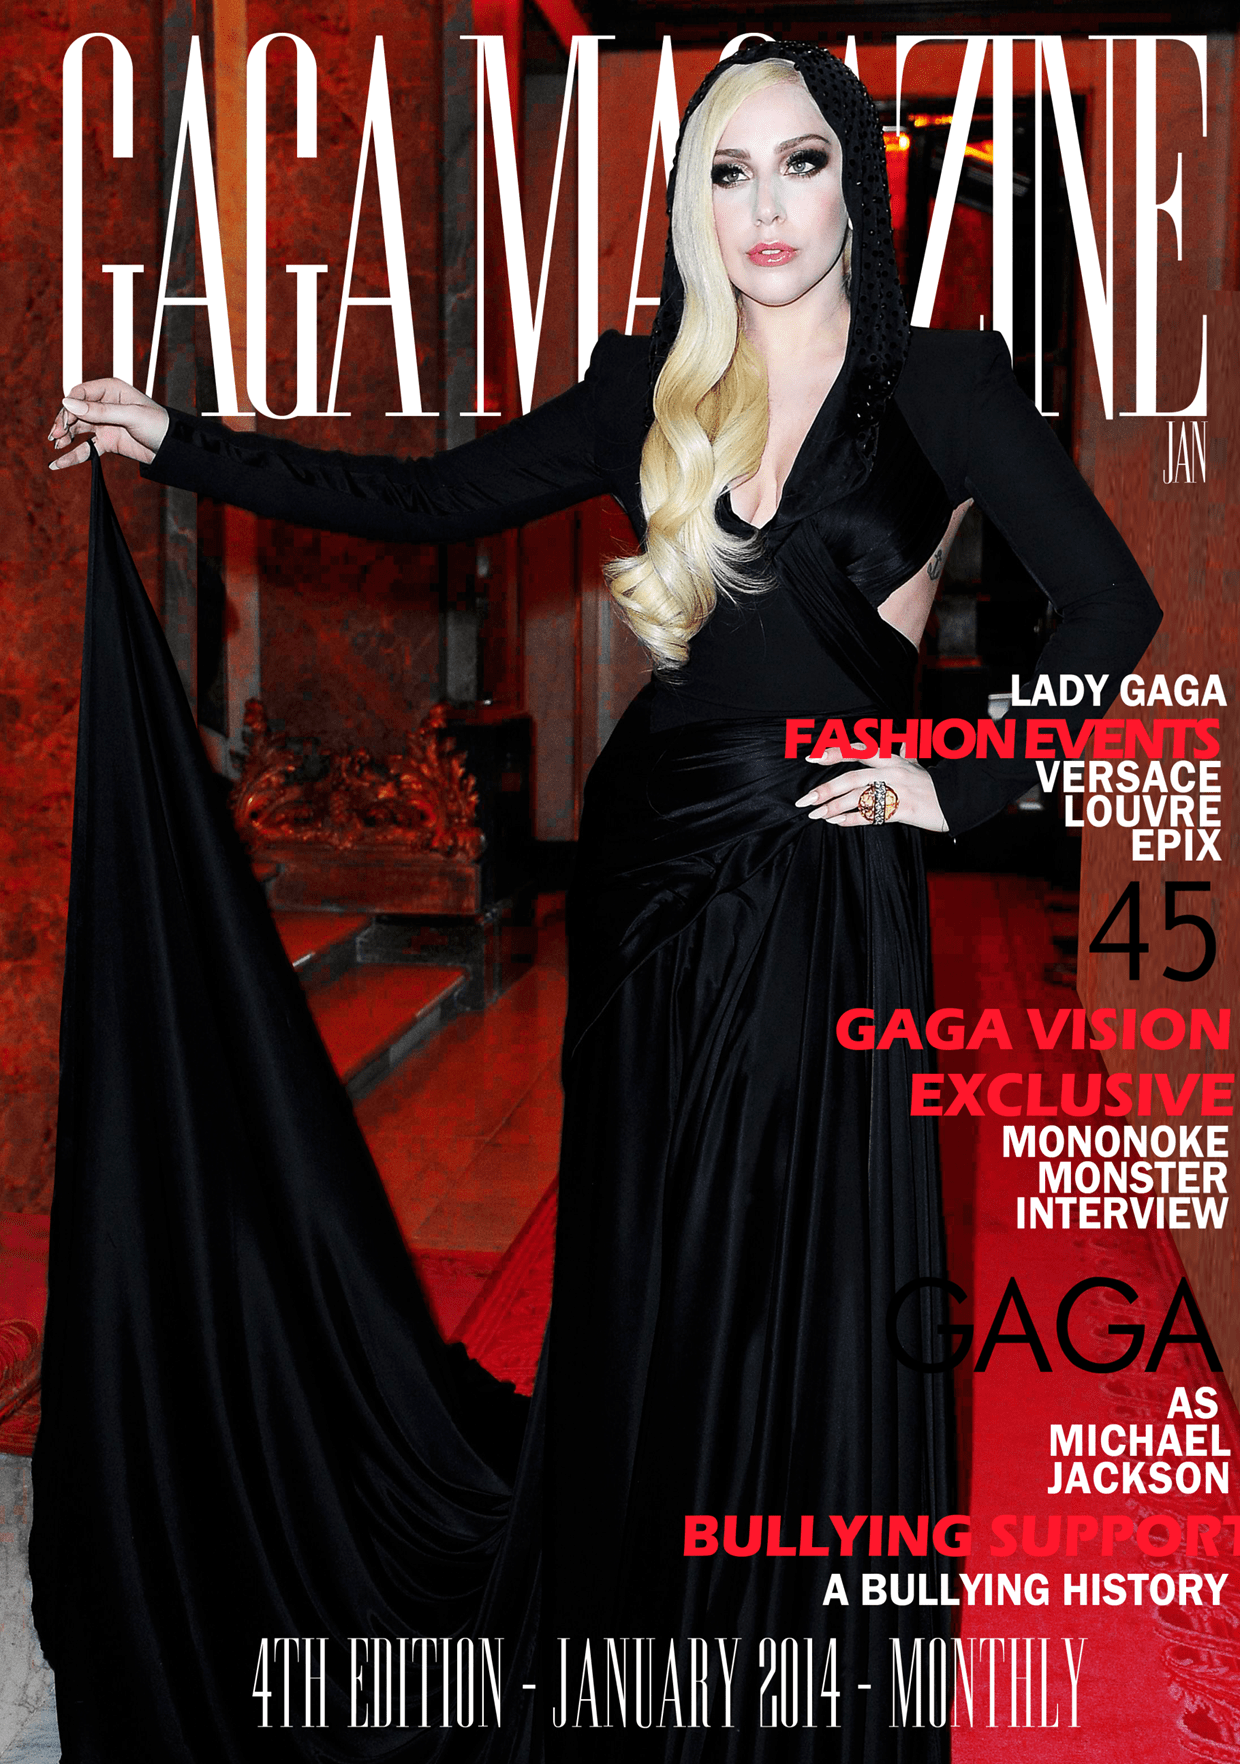 Gaga Magazine - 4th Edition - January 2014